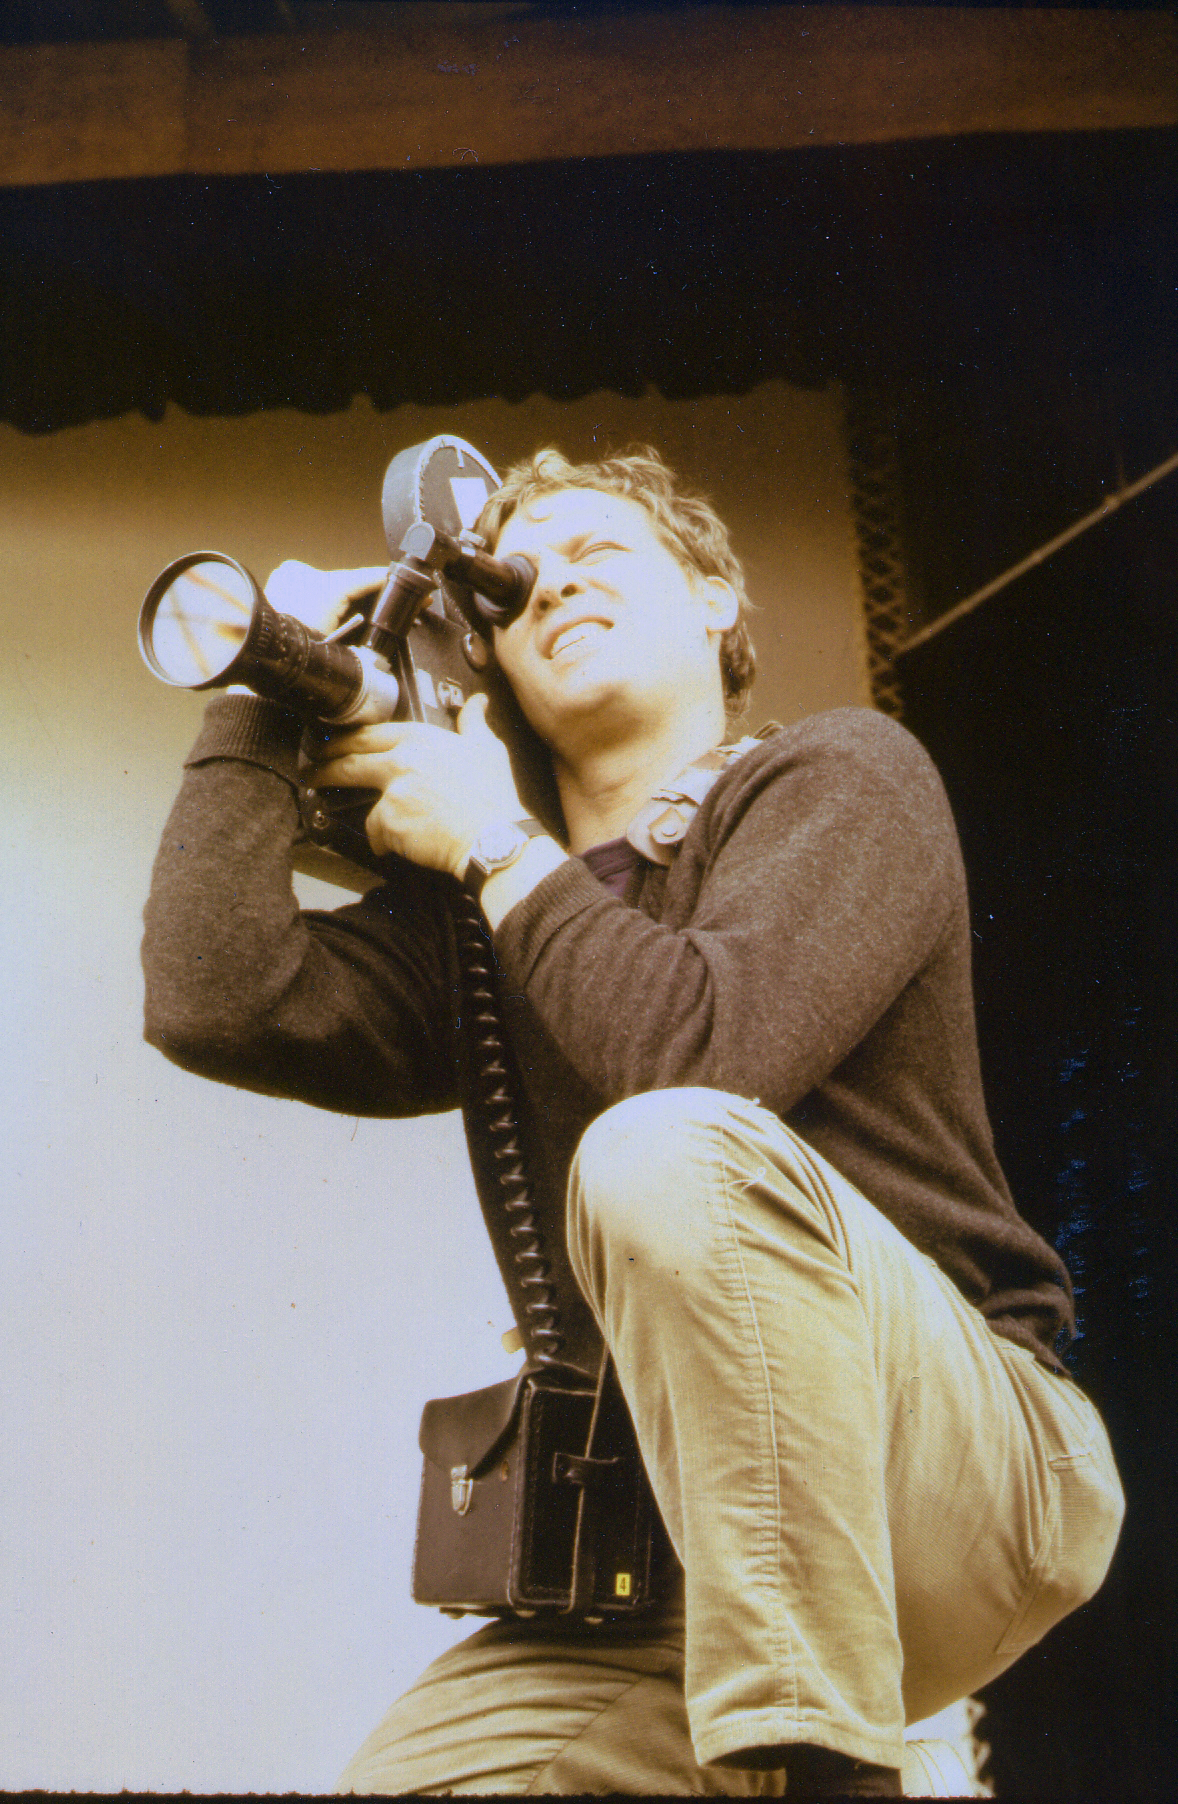 D.A. Pennebaker during the filming of